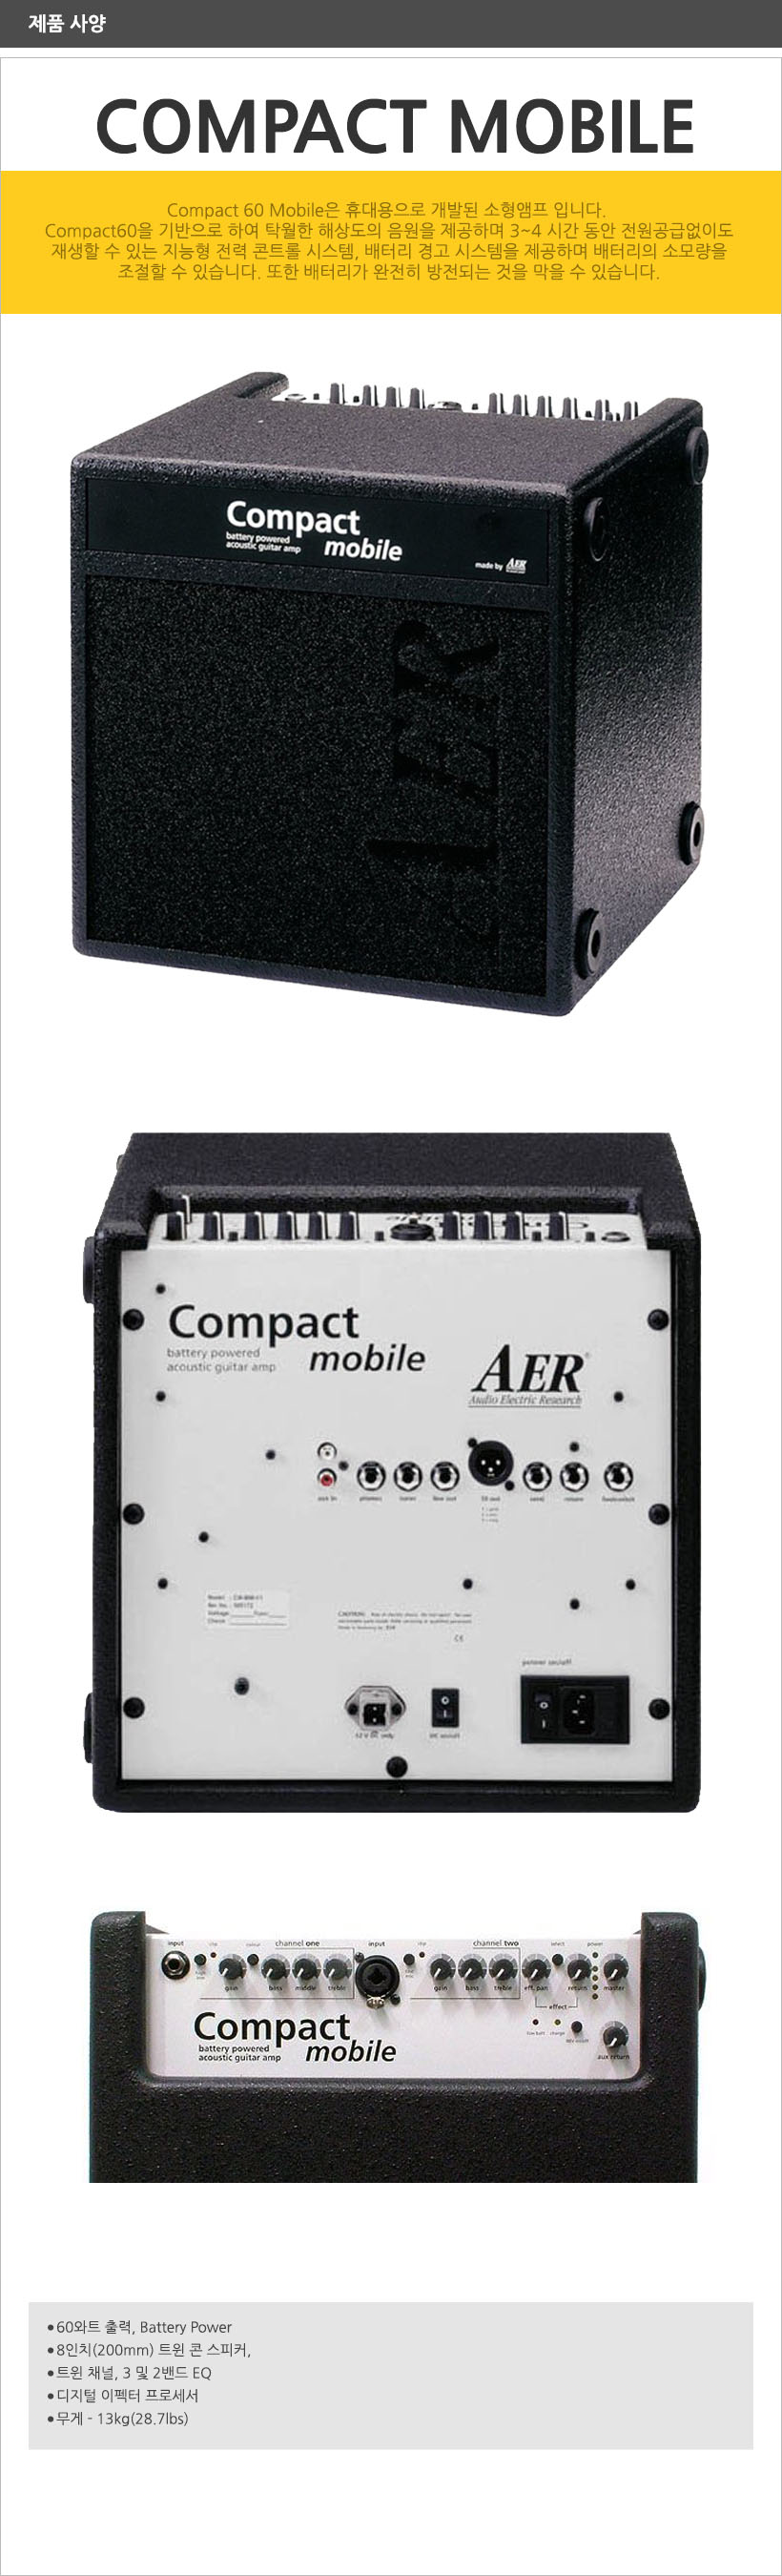 COMPACT MOBILE 제품사양